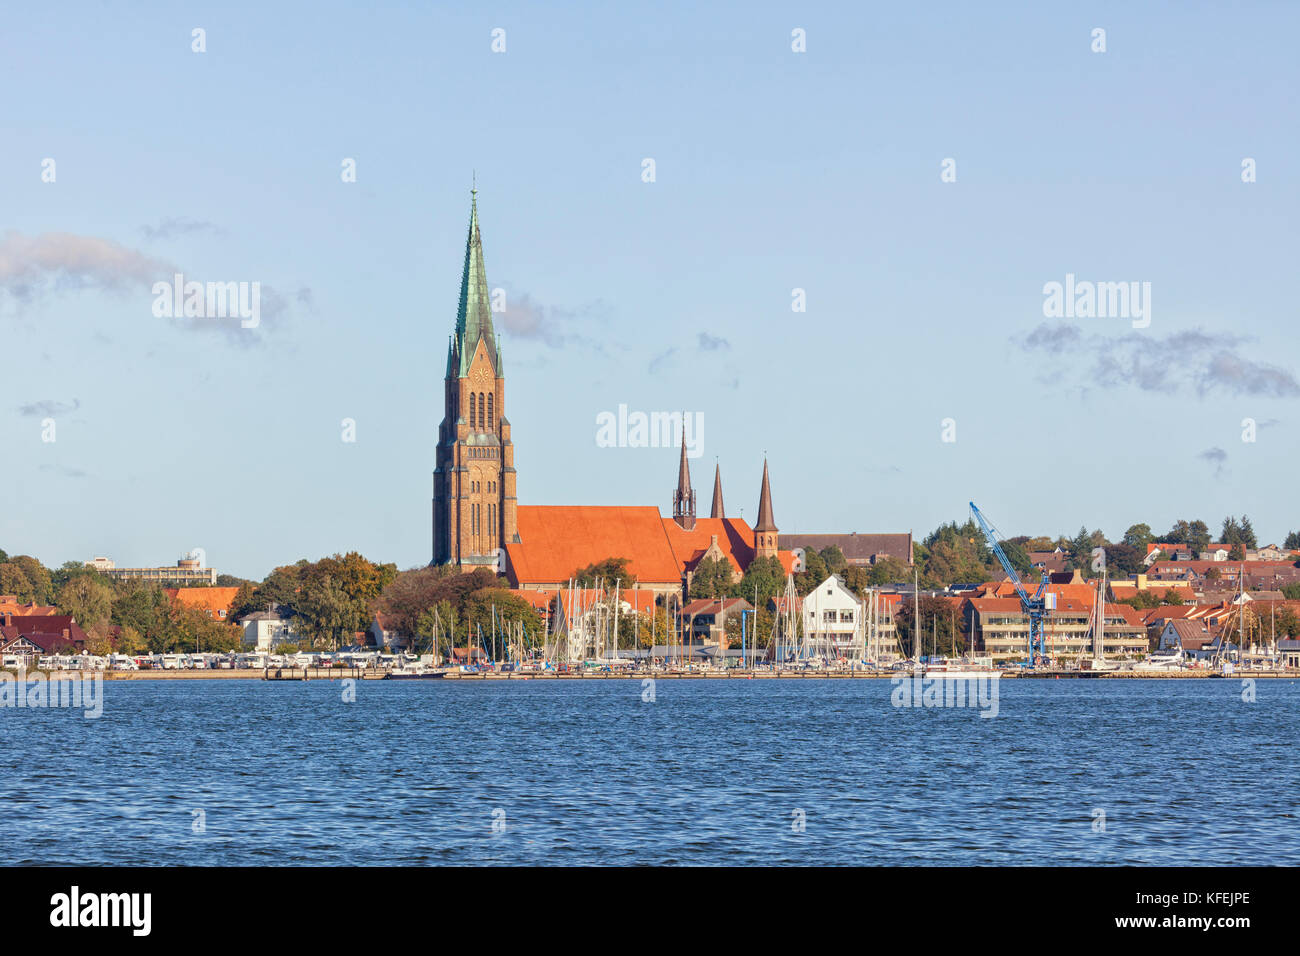 Saint Peters church, known as Schleswig Cathedral, and the harbor of Schleswig on the Schlei inlet - Stock Image